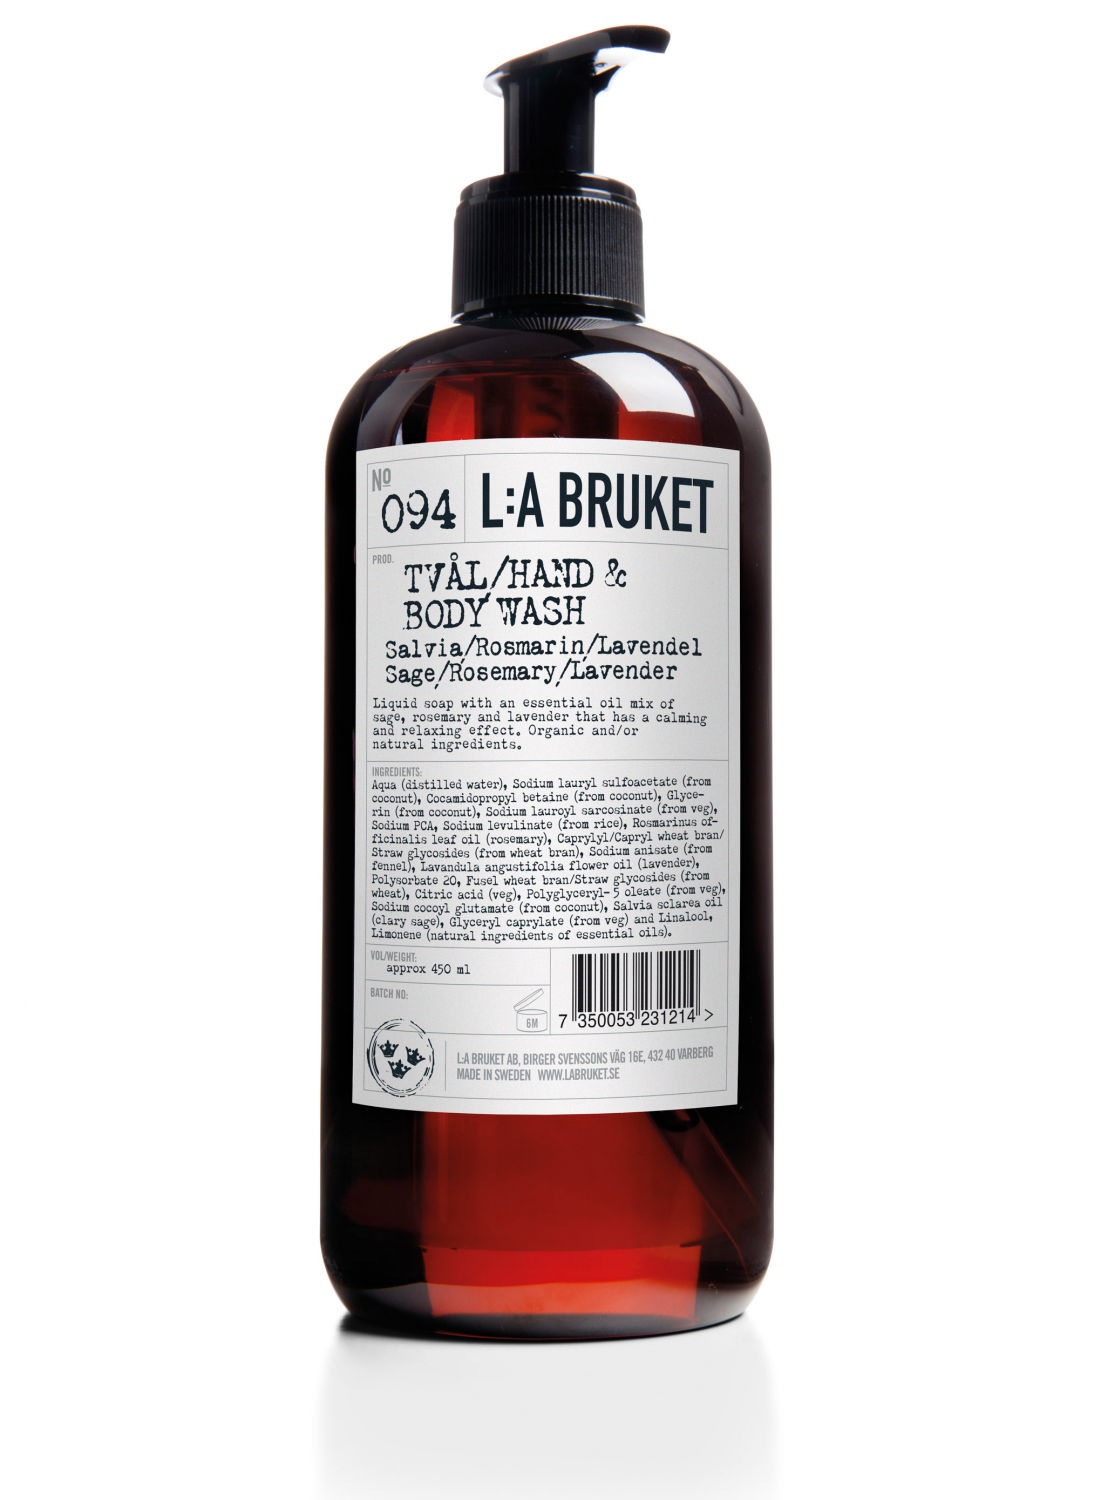 Liquid soap/body wash in a brown bottle with pump with scents of sage, rosemary and lavender, containing 450 ml.